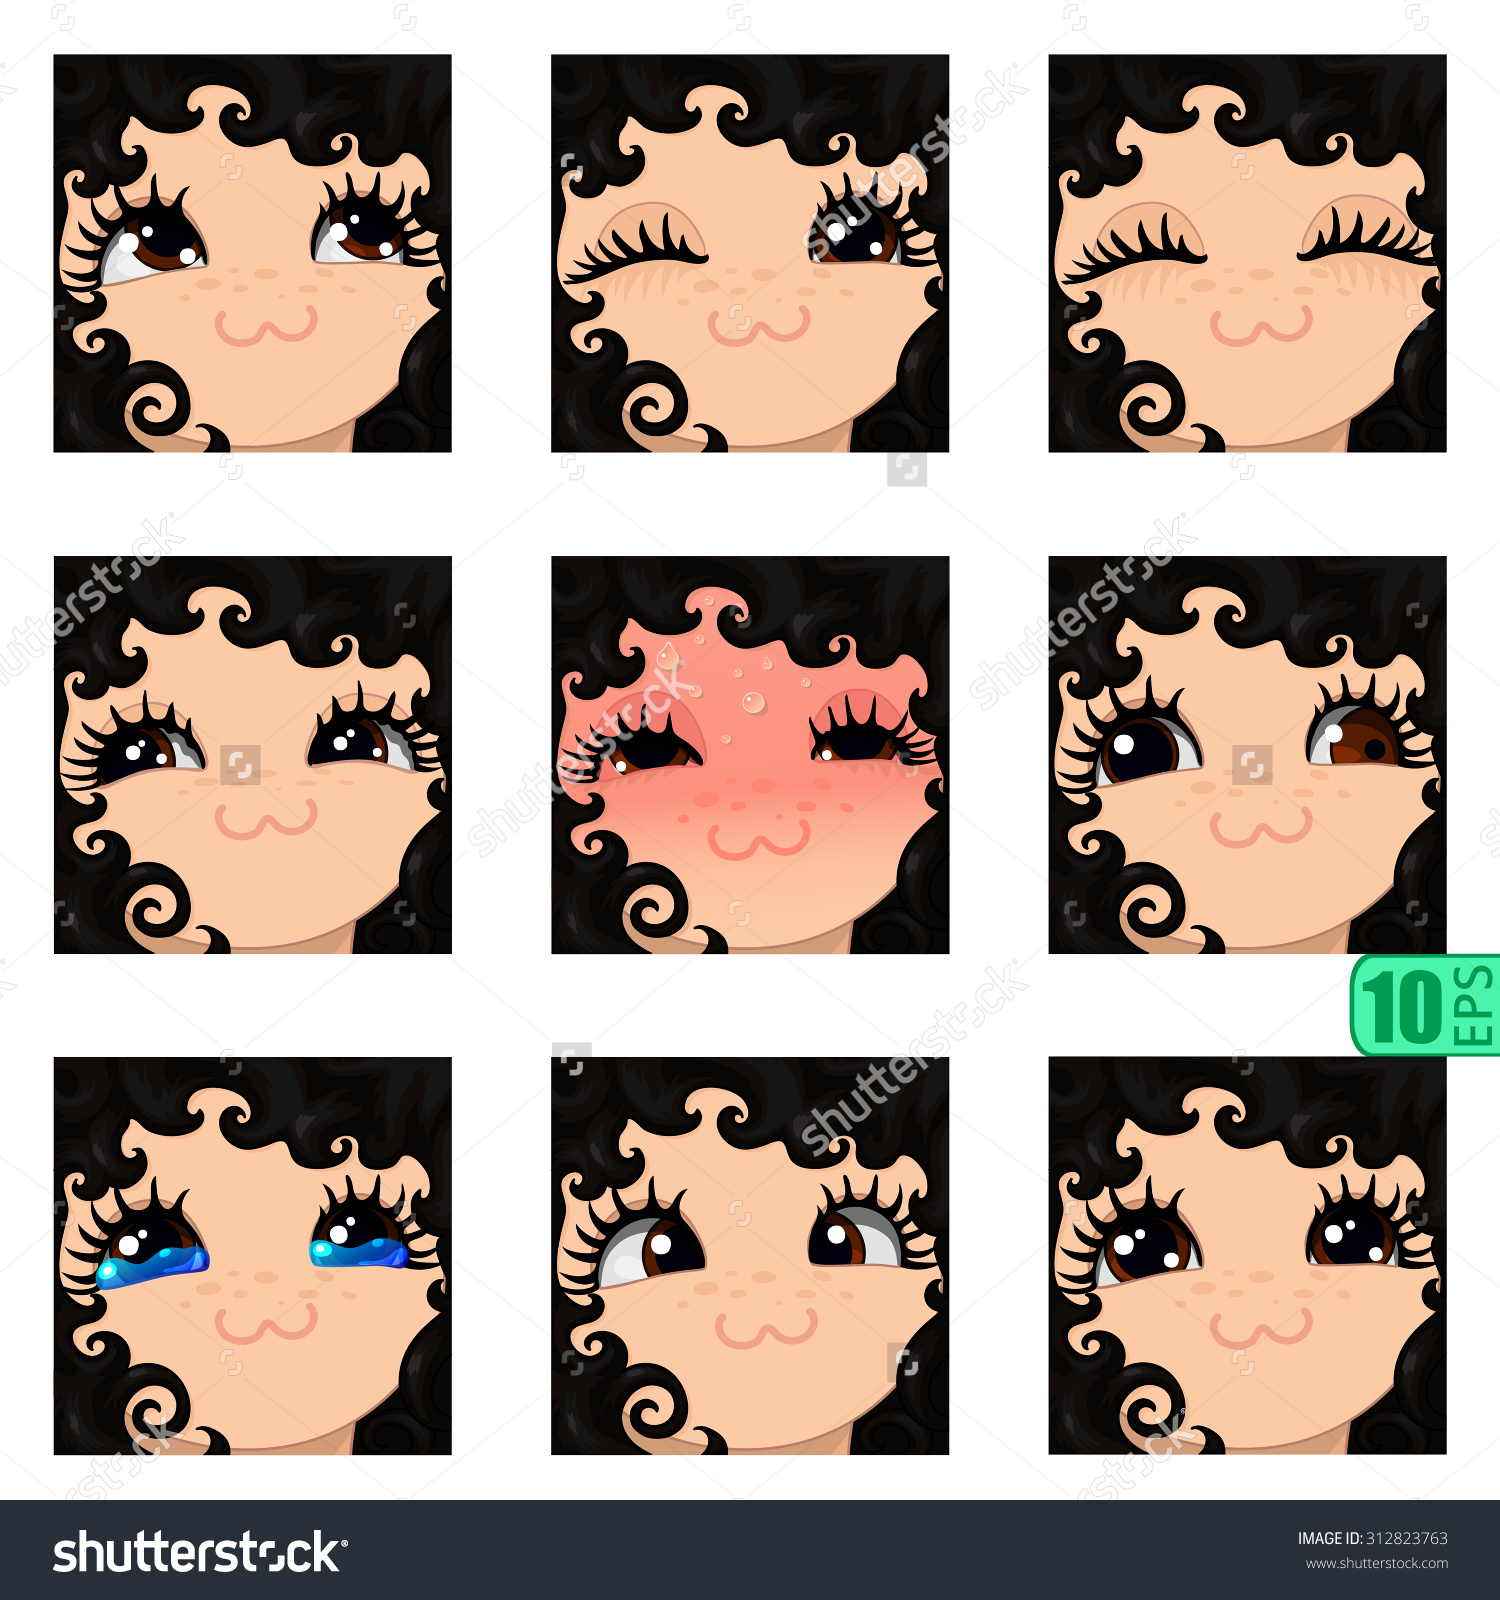 Vector Set Avatars Icons Girl Faces Stock Vector 312823763.